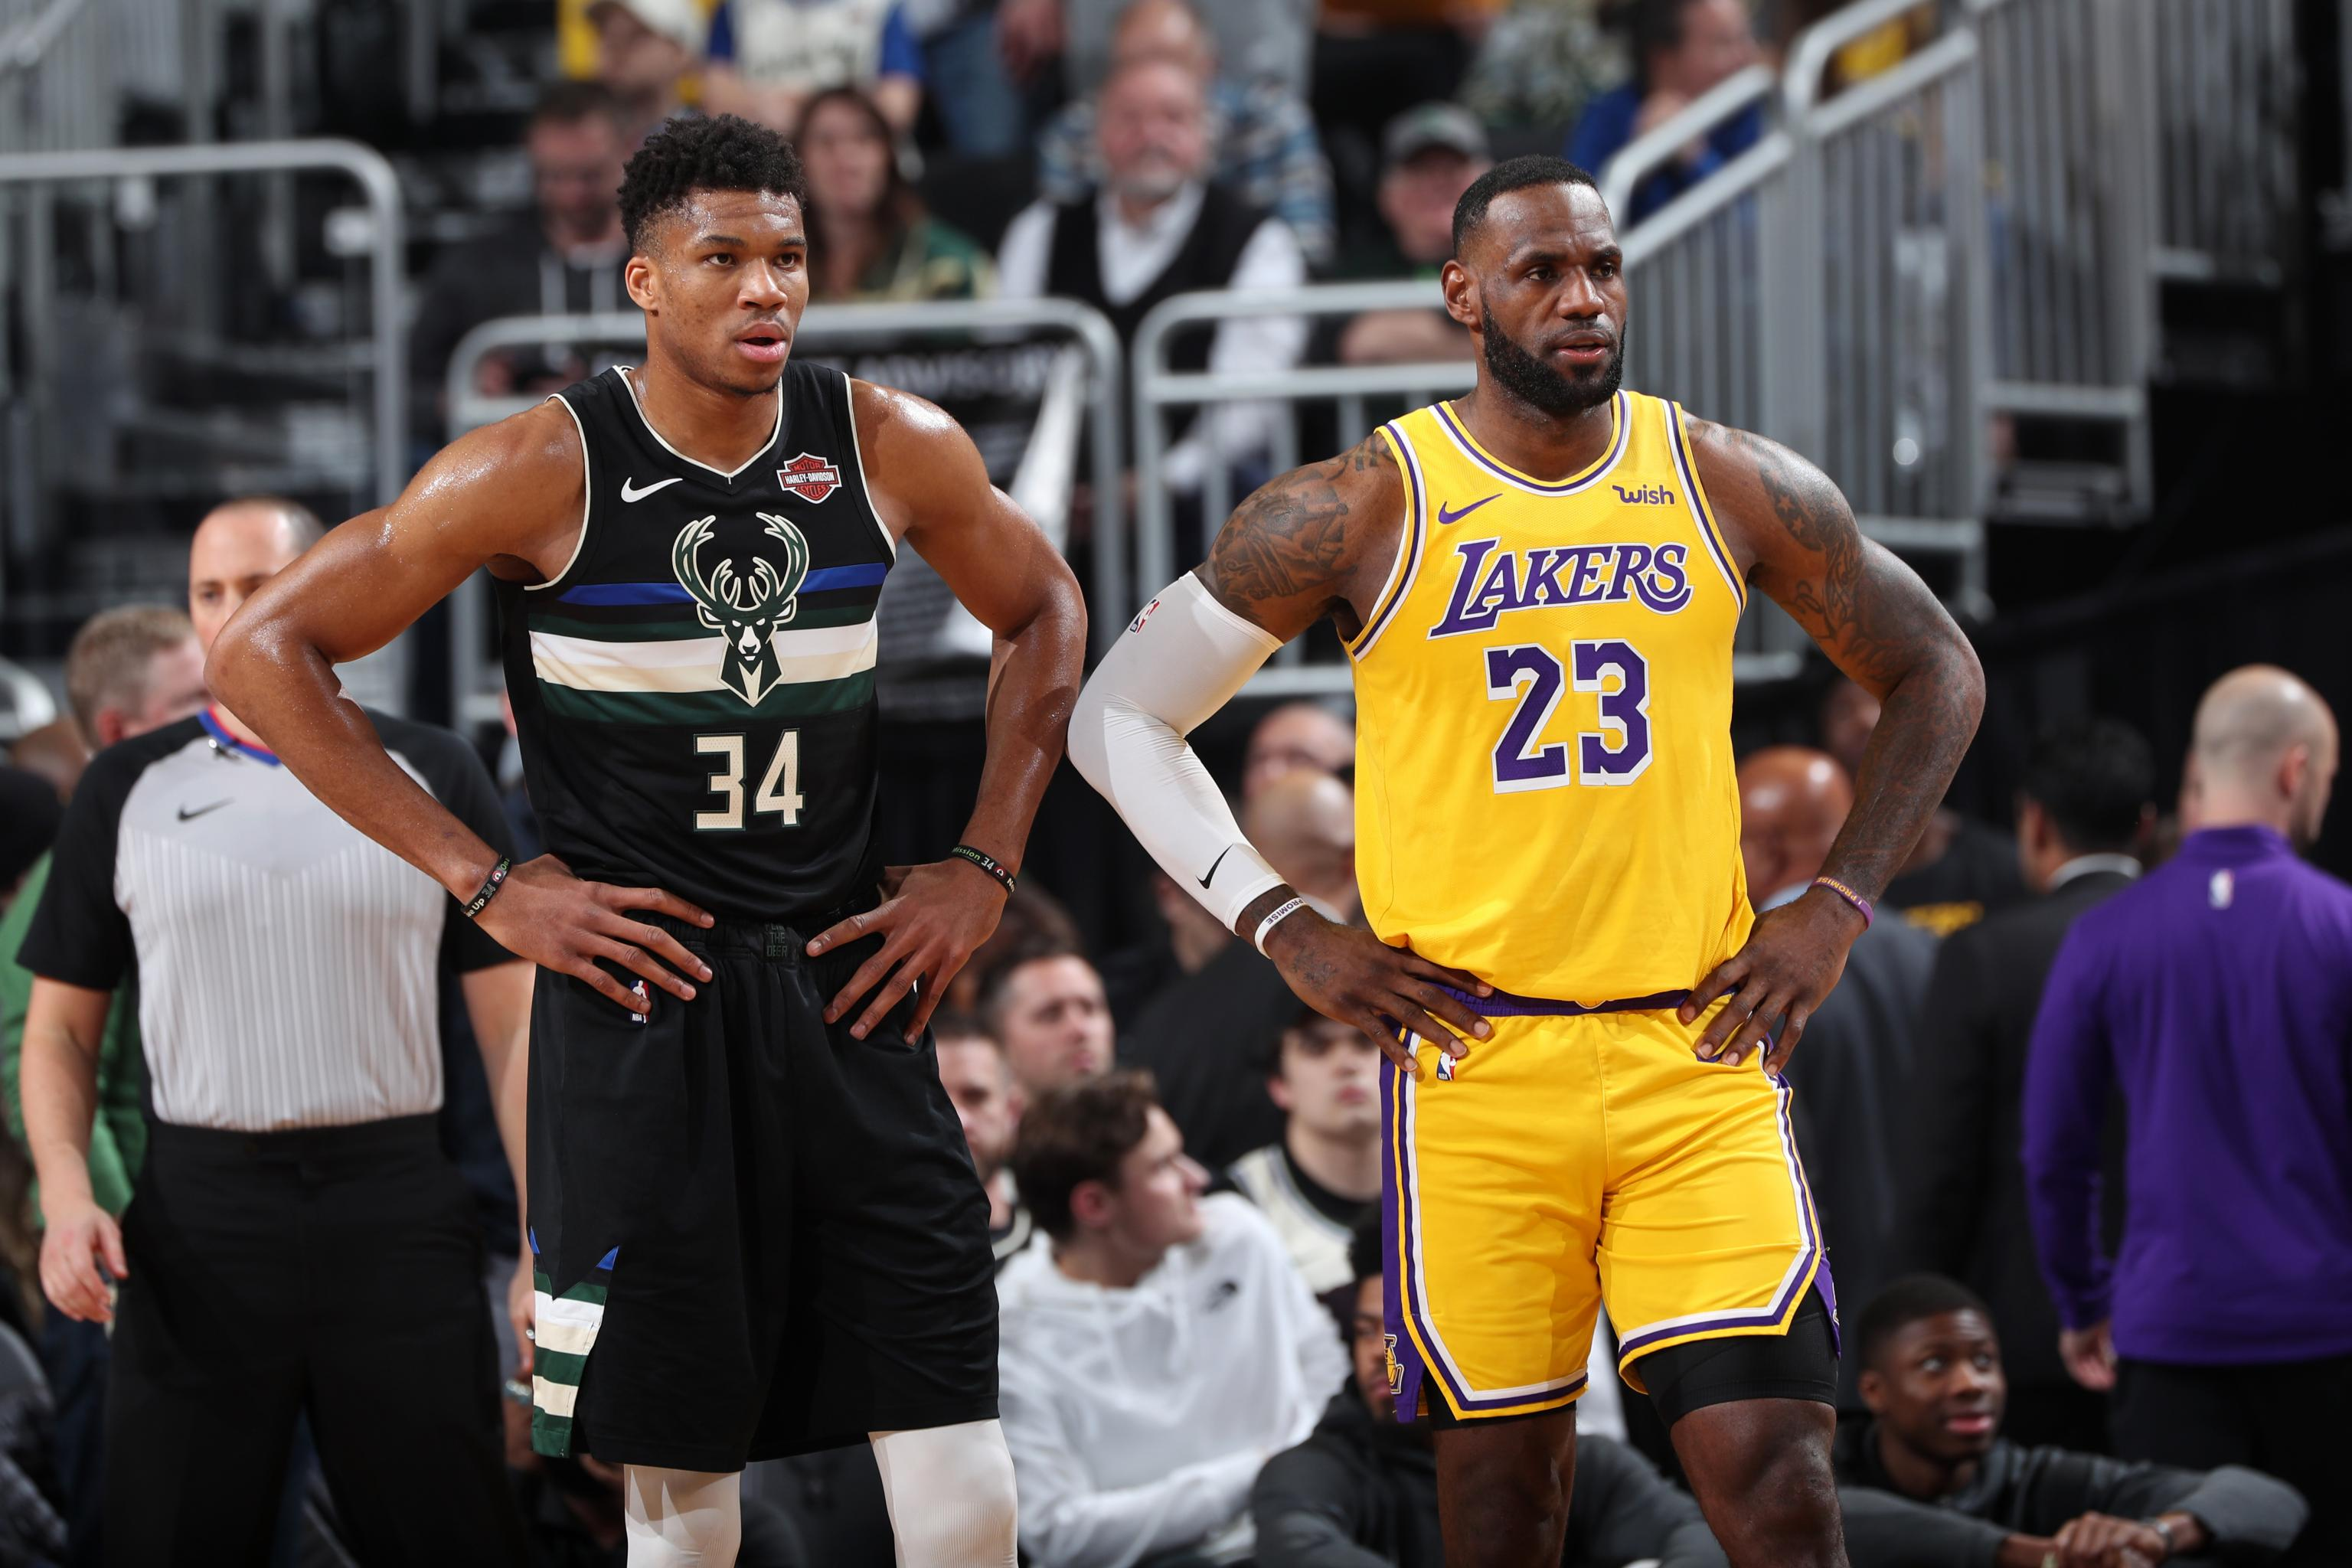 NBA All-Star Game 2020 Draft: TV Schedule for LeBron vs. Giannis ...